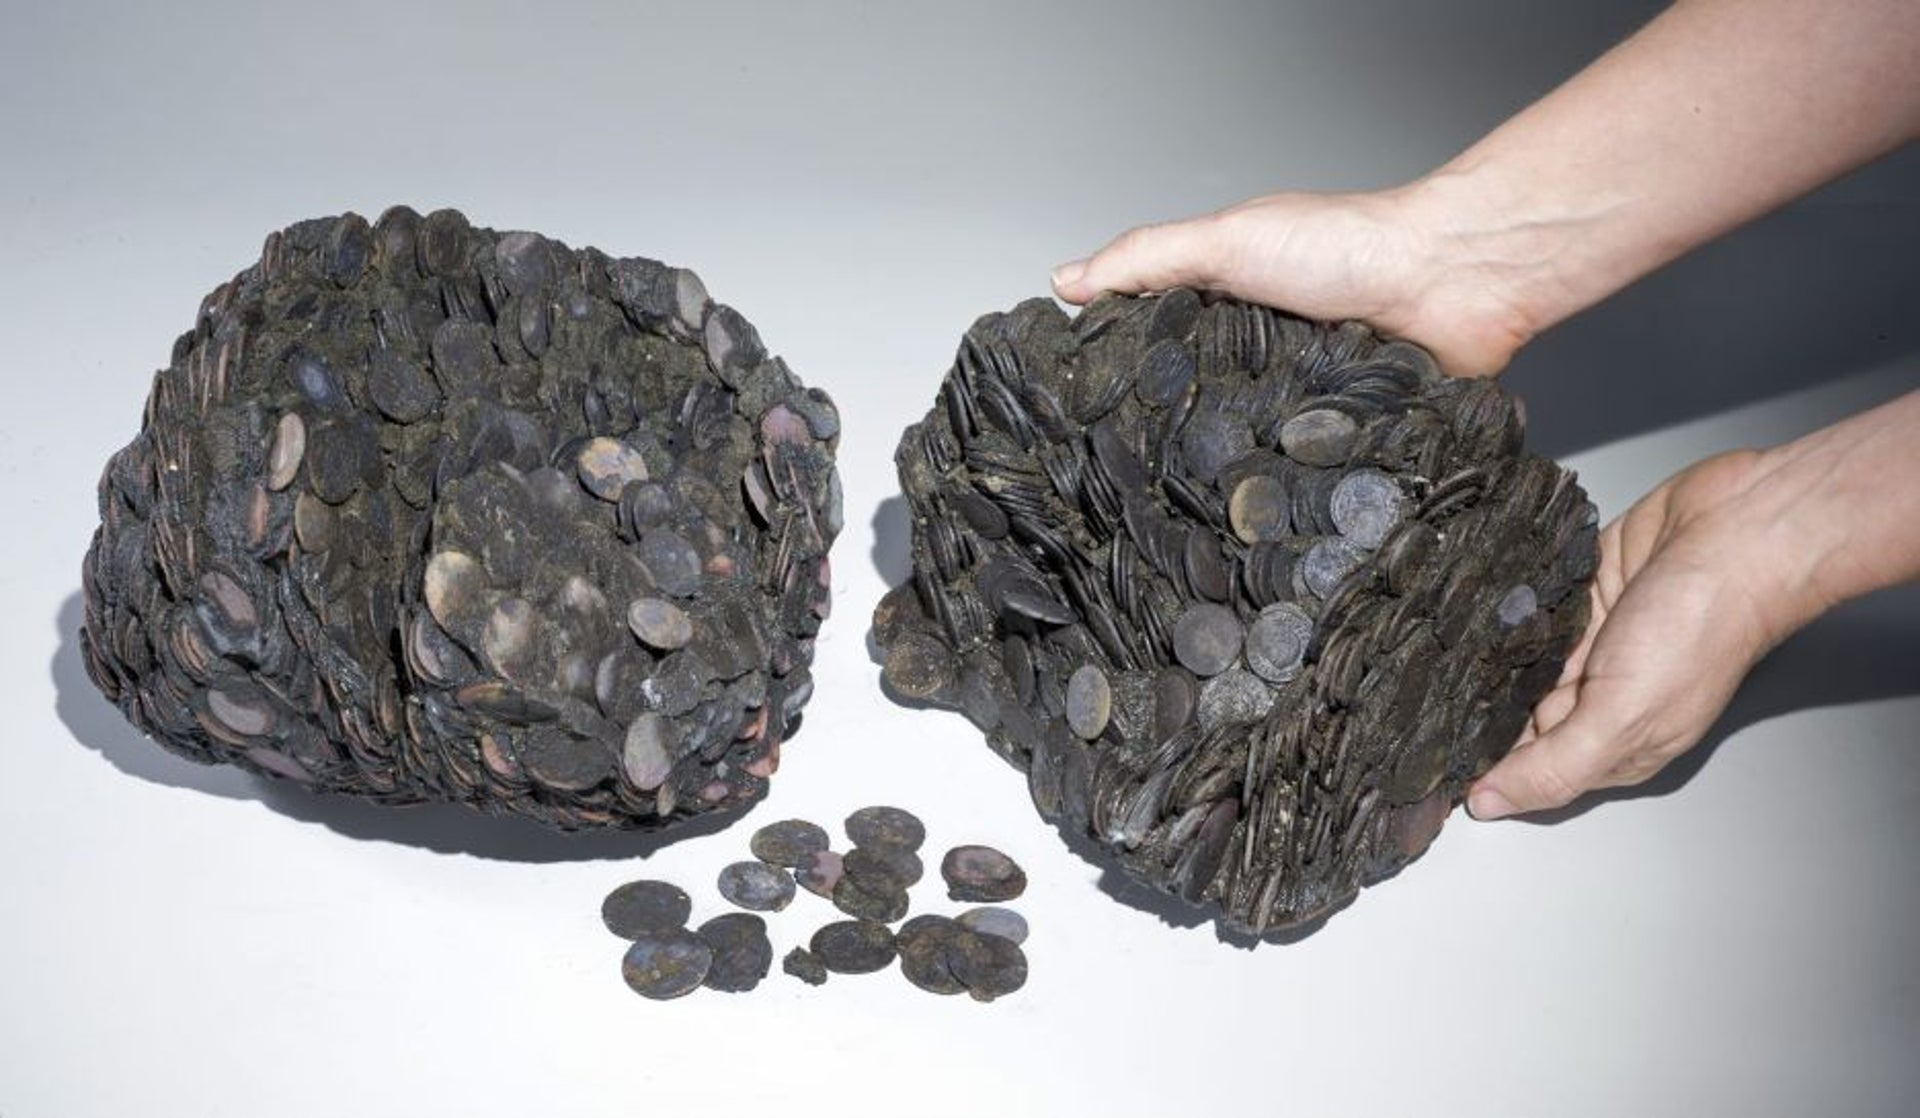 Clumps of coins discovered in the harbor of Caesarea in May, 2016, in the shape of the ceramic vessel in which they were transported before they oxidized and became stuck together.